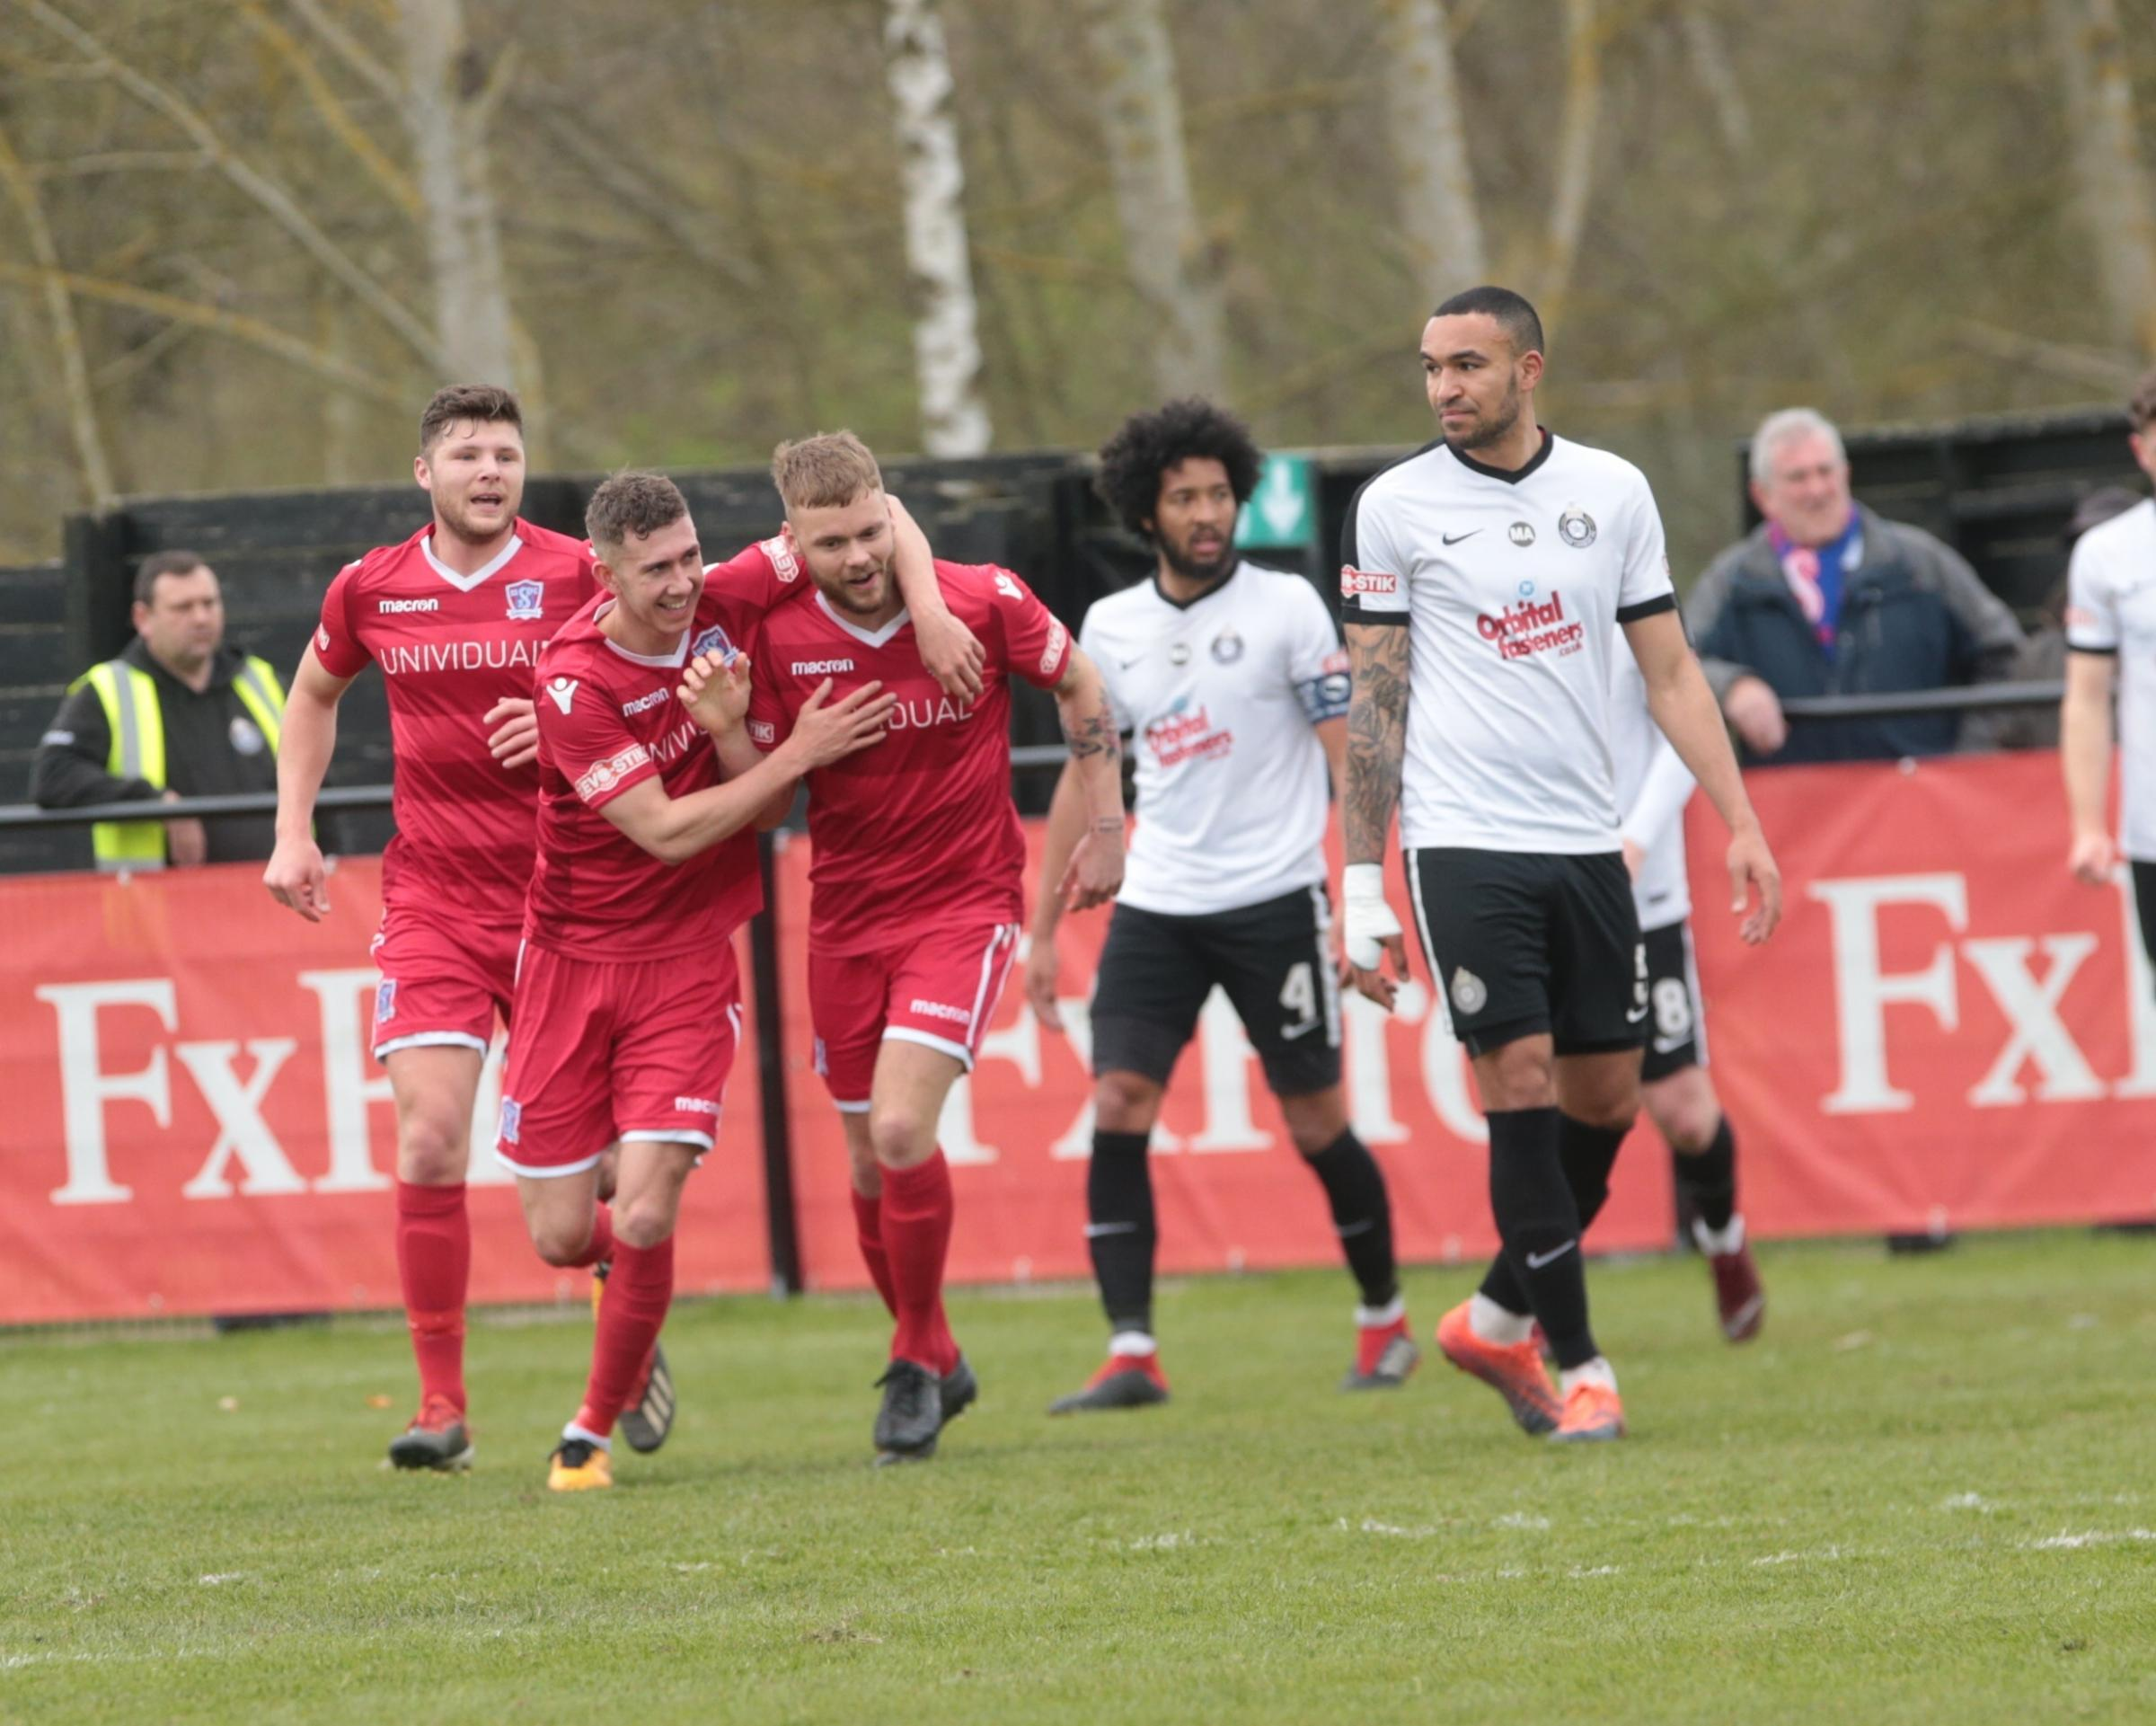 Kings Langley v Swindon Supermarine; Saturday, April 6, 2019; PICTURE: JEFF YOUD